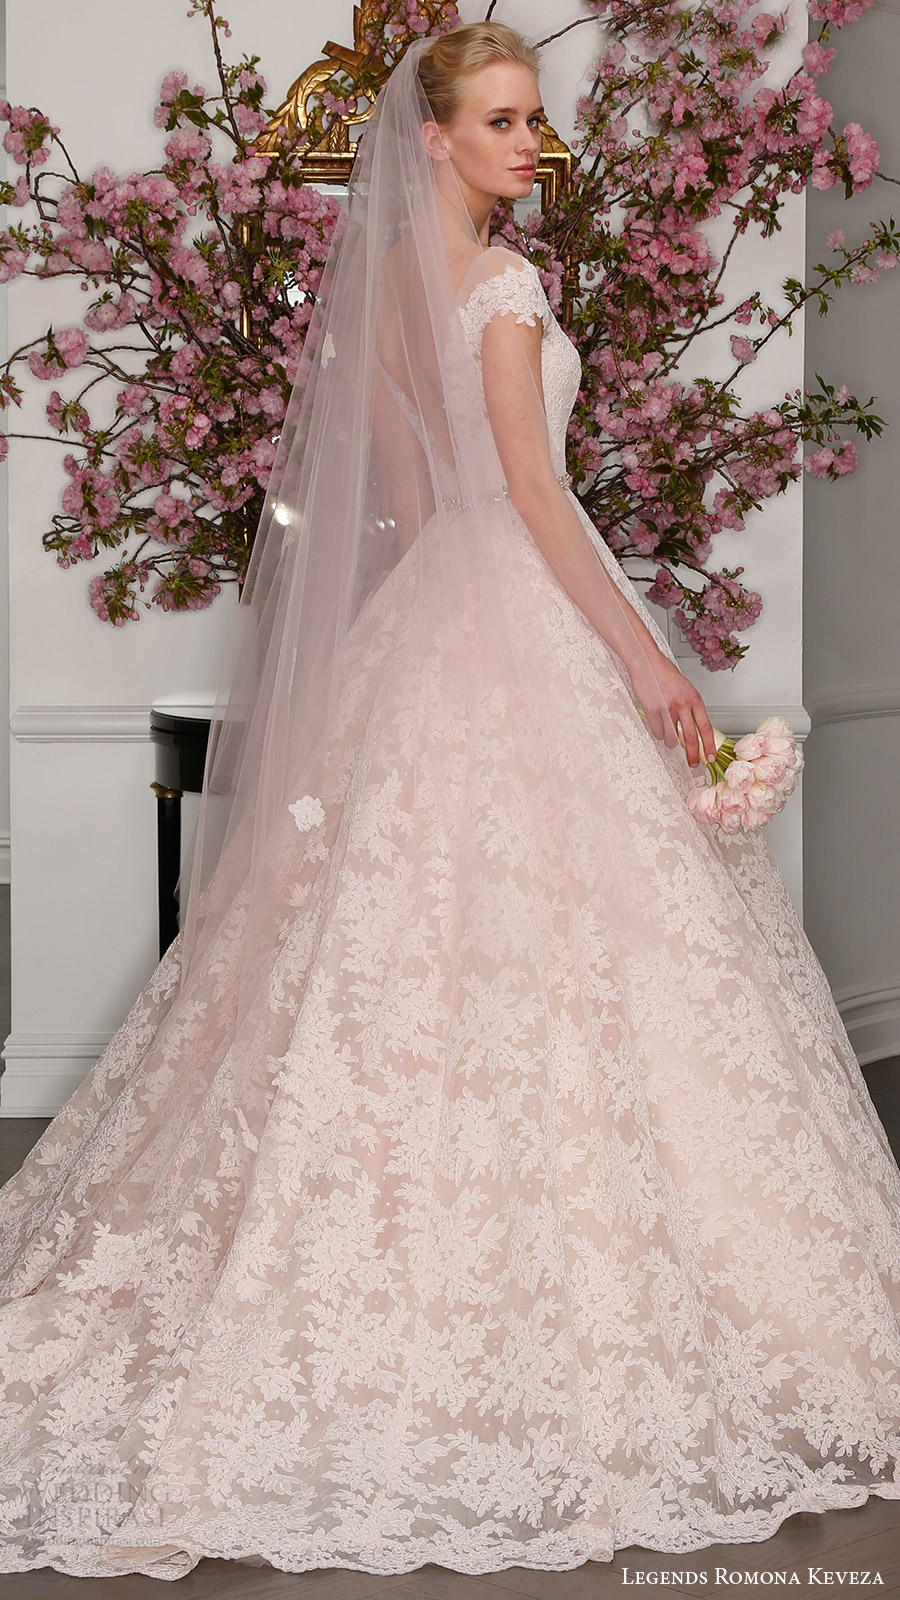 legends romona keveza bridal spring 2017 illusion off shoulder cap sleeves deep vneck lace ball gown (l7133) bv blush color low back